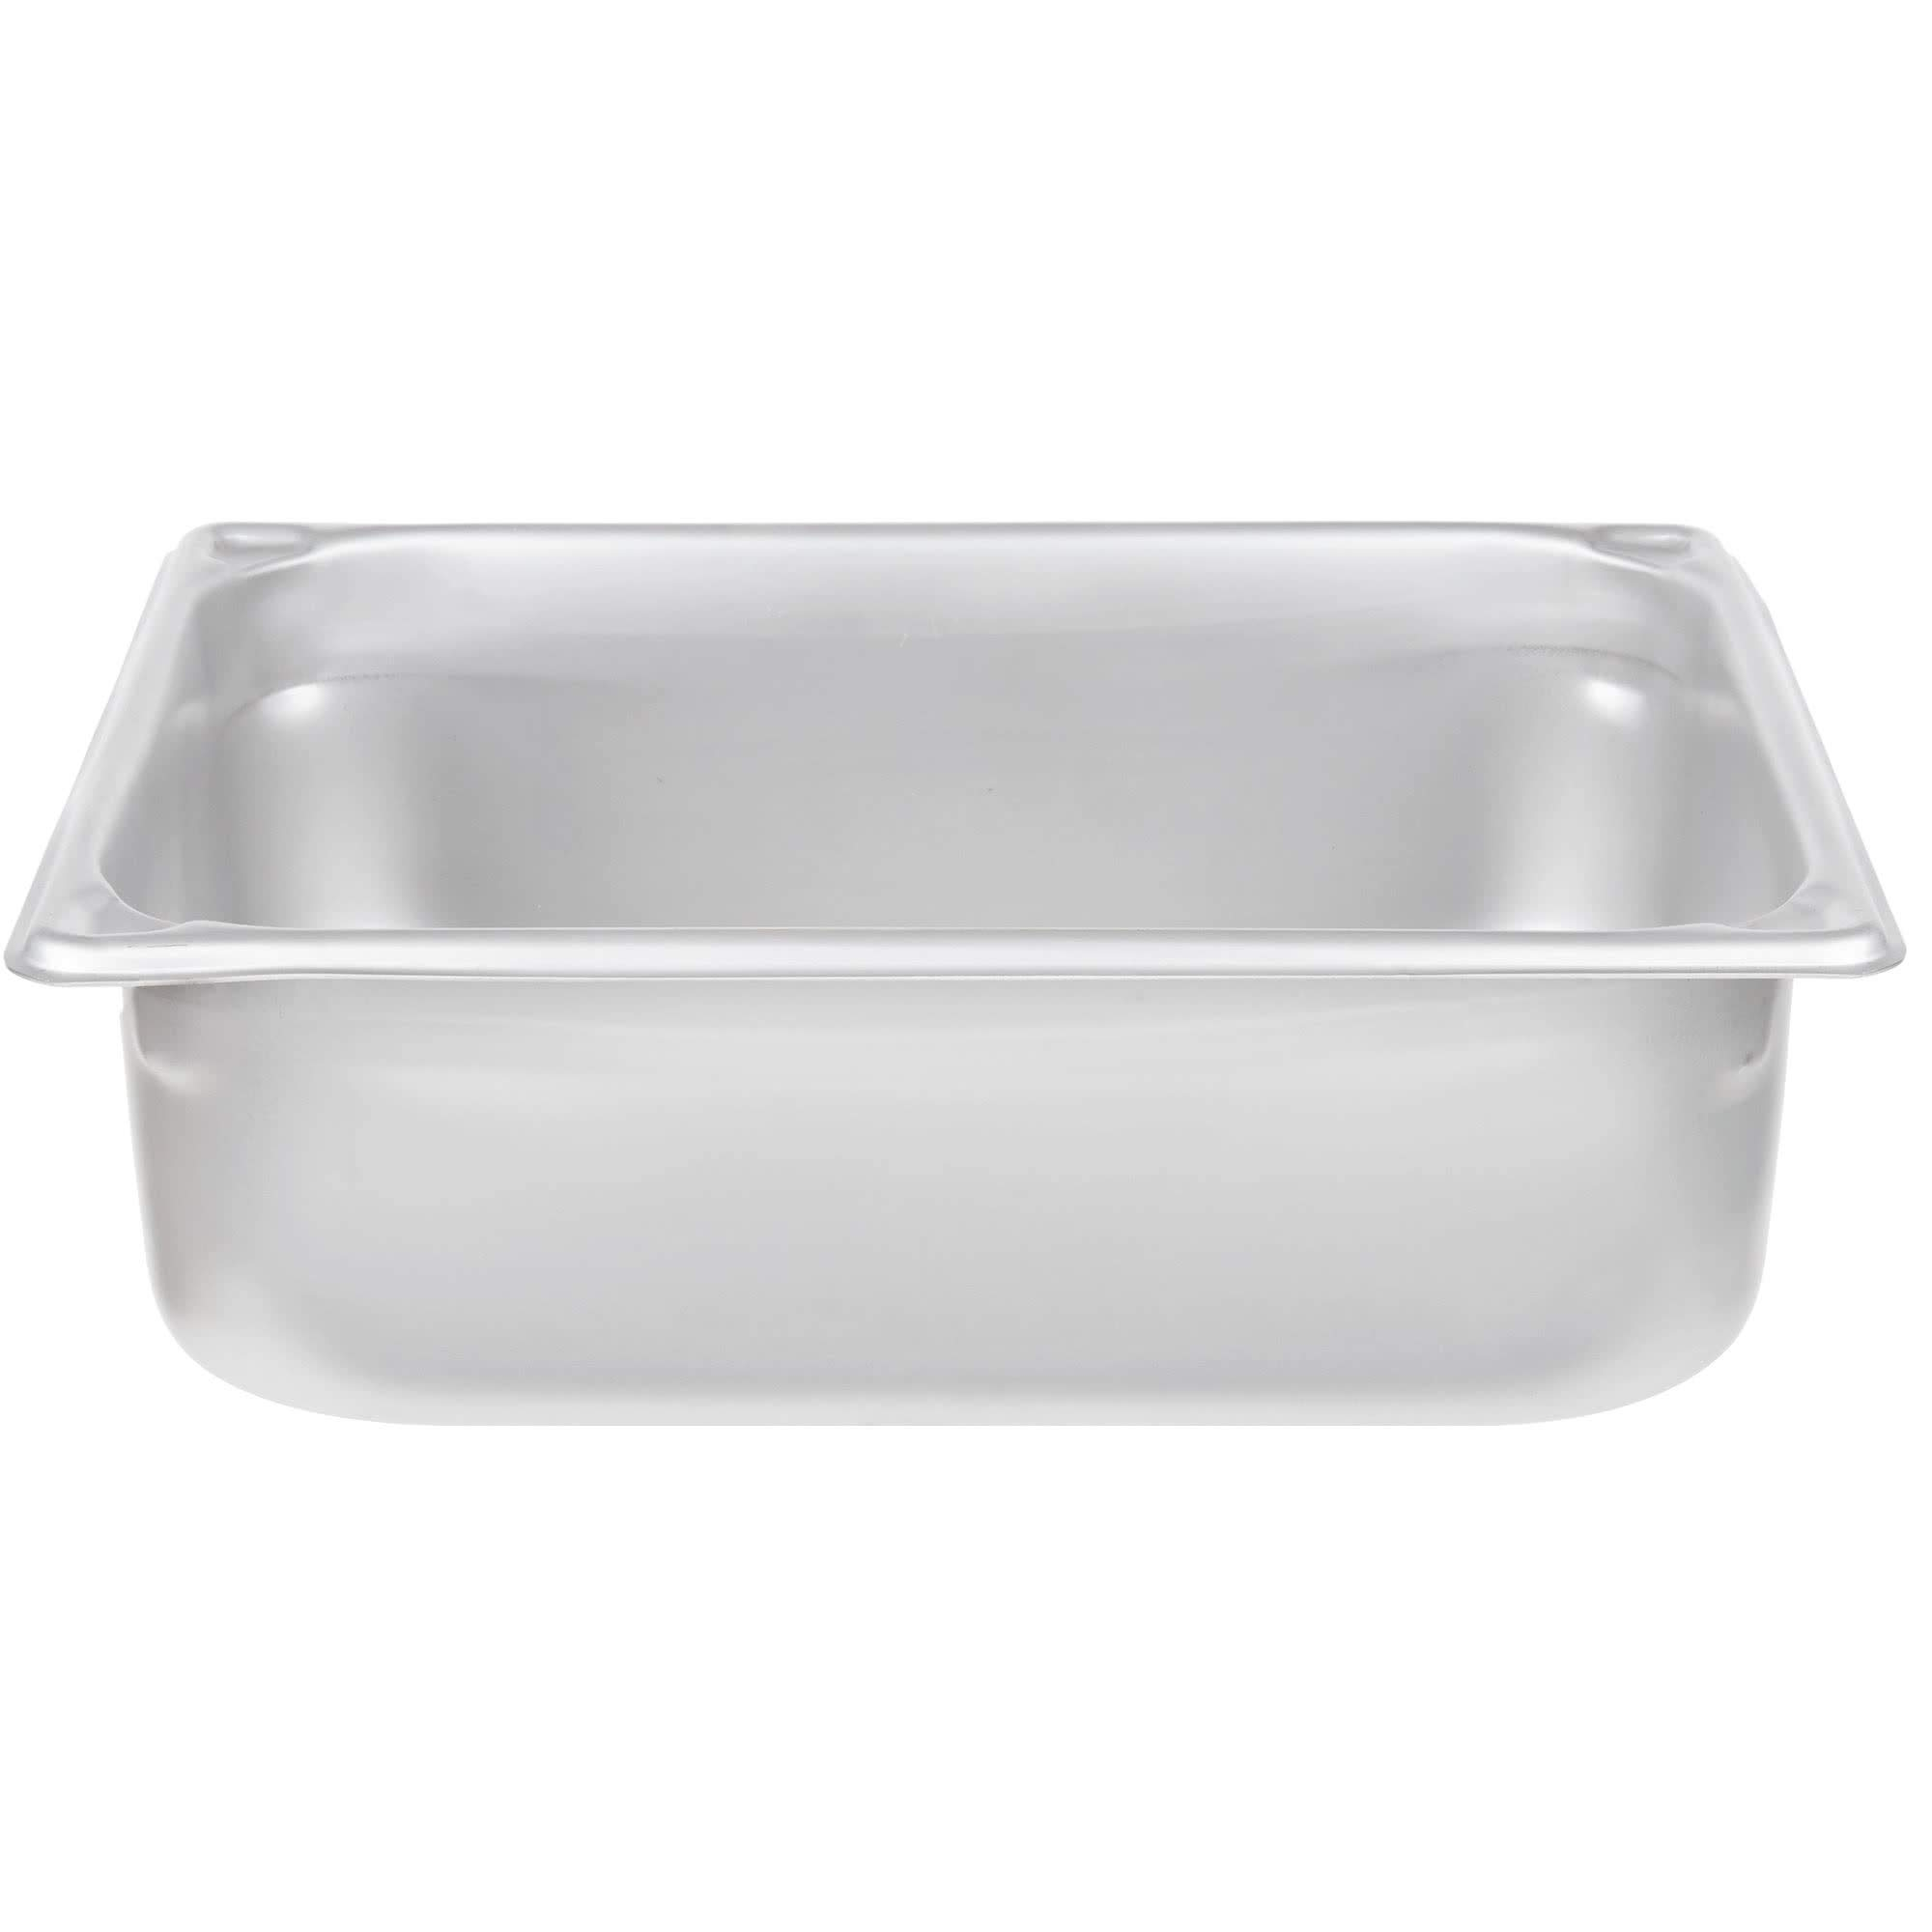 TableTop King 30240 Super Pan Heavy-Duty 1/2 Size Anti-Jam Stainless Steel Steam Table/Hotel Pan - 4'' Deep by TableTop King